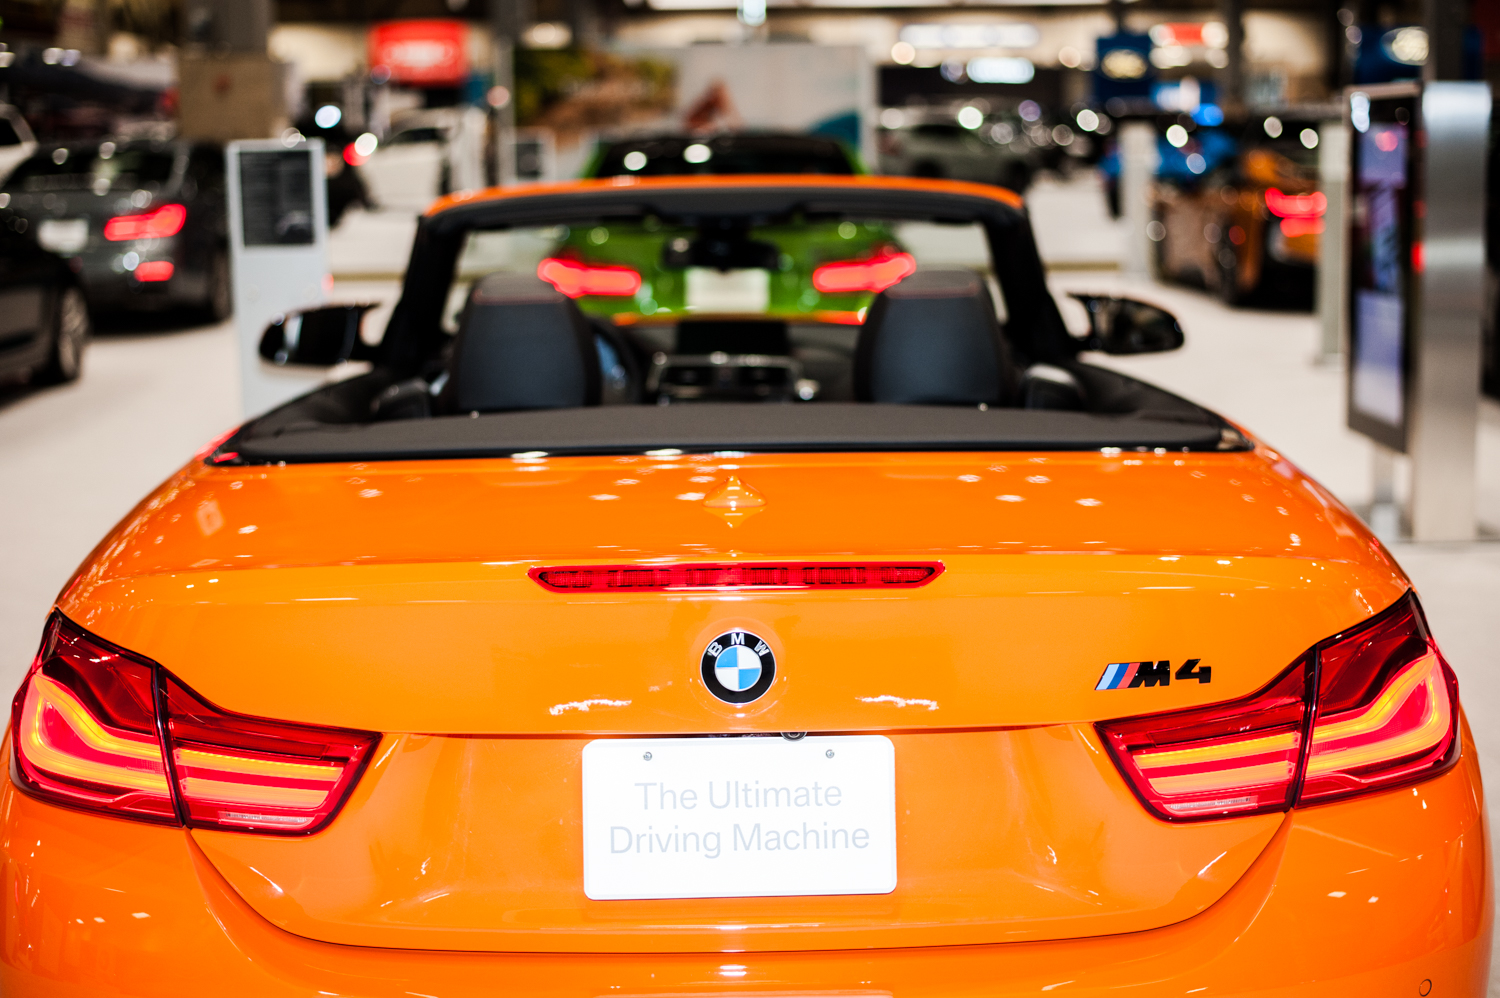 BMW M4 Performance - $67,400+. The Seattle International Auto Show{ }showcases all that's new in cars, trucks, exotics, super cars, electrics and all the latest models from the world's automobile makers. We scoured the place for the most expensive vehicles we could find - and aye caramba - some of these are literally the cars of our dreams. The Auto Show runs Nov. 9-12, 2018 at CenturyLink Field Event Center. (Image: Elizabeth Crook / Seattle Refined)